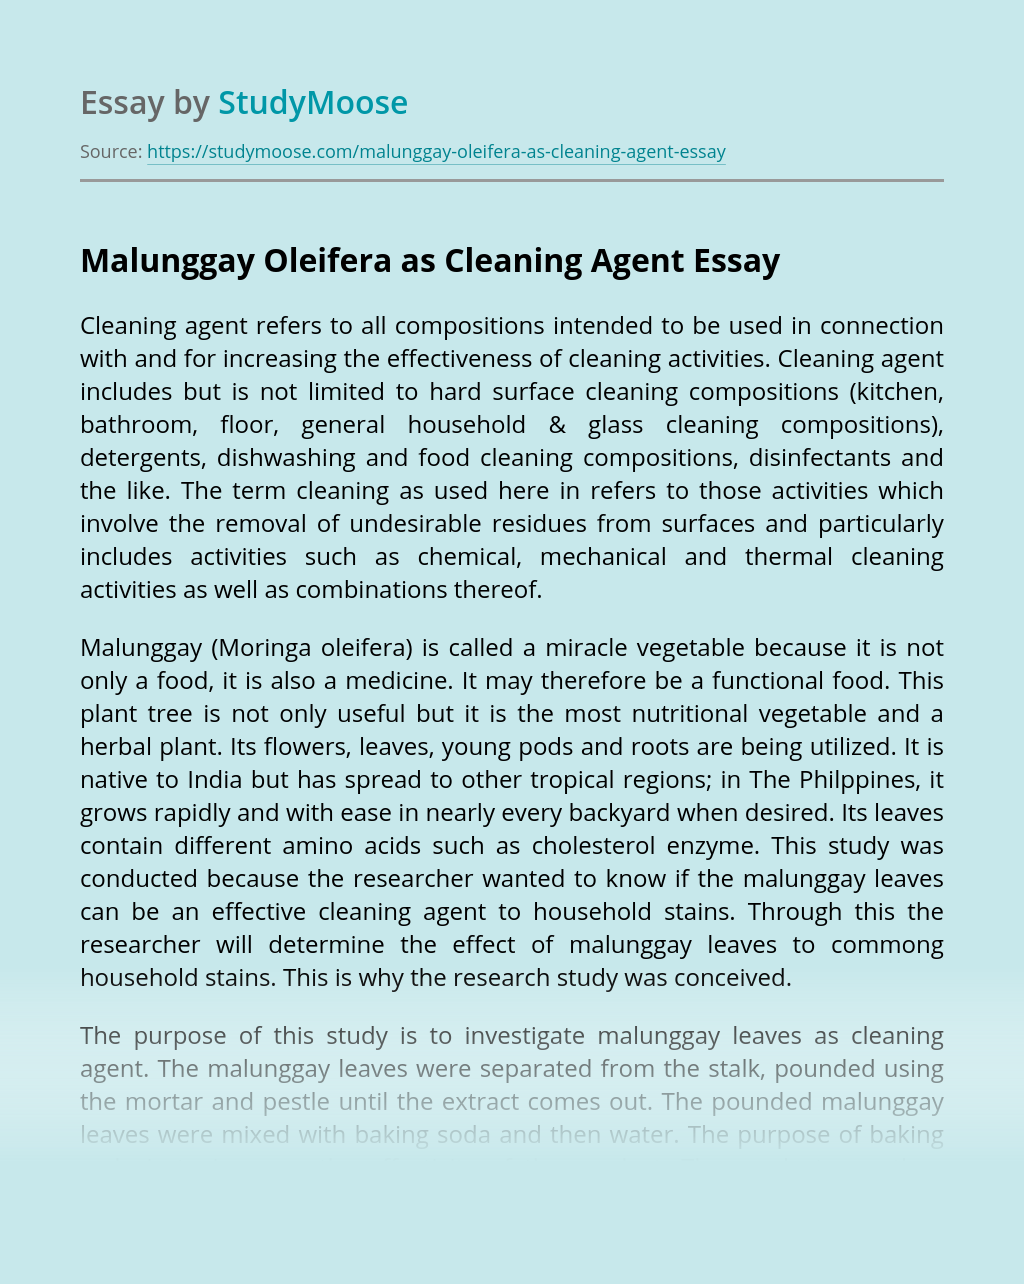 Malunggay Oleifera as Cleaning Agent